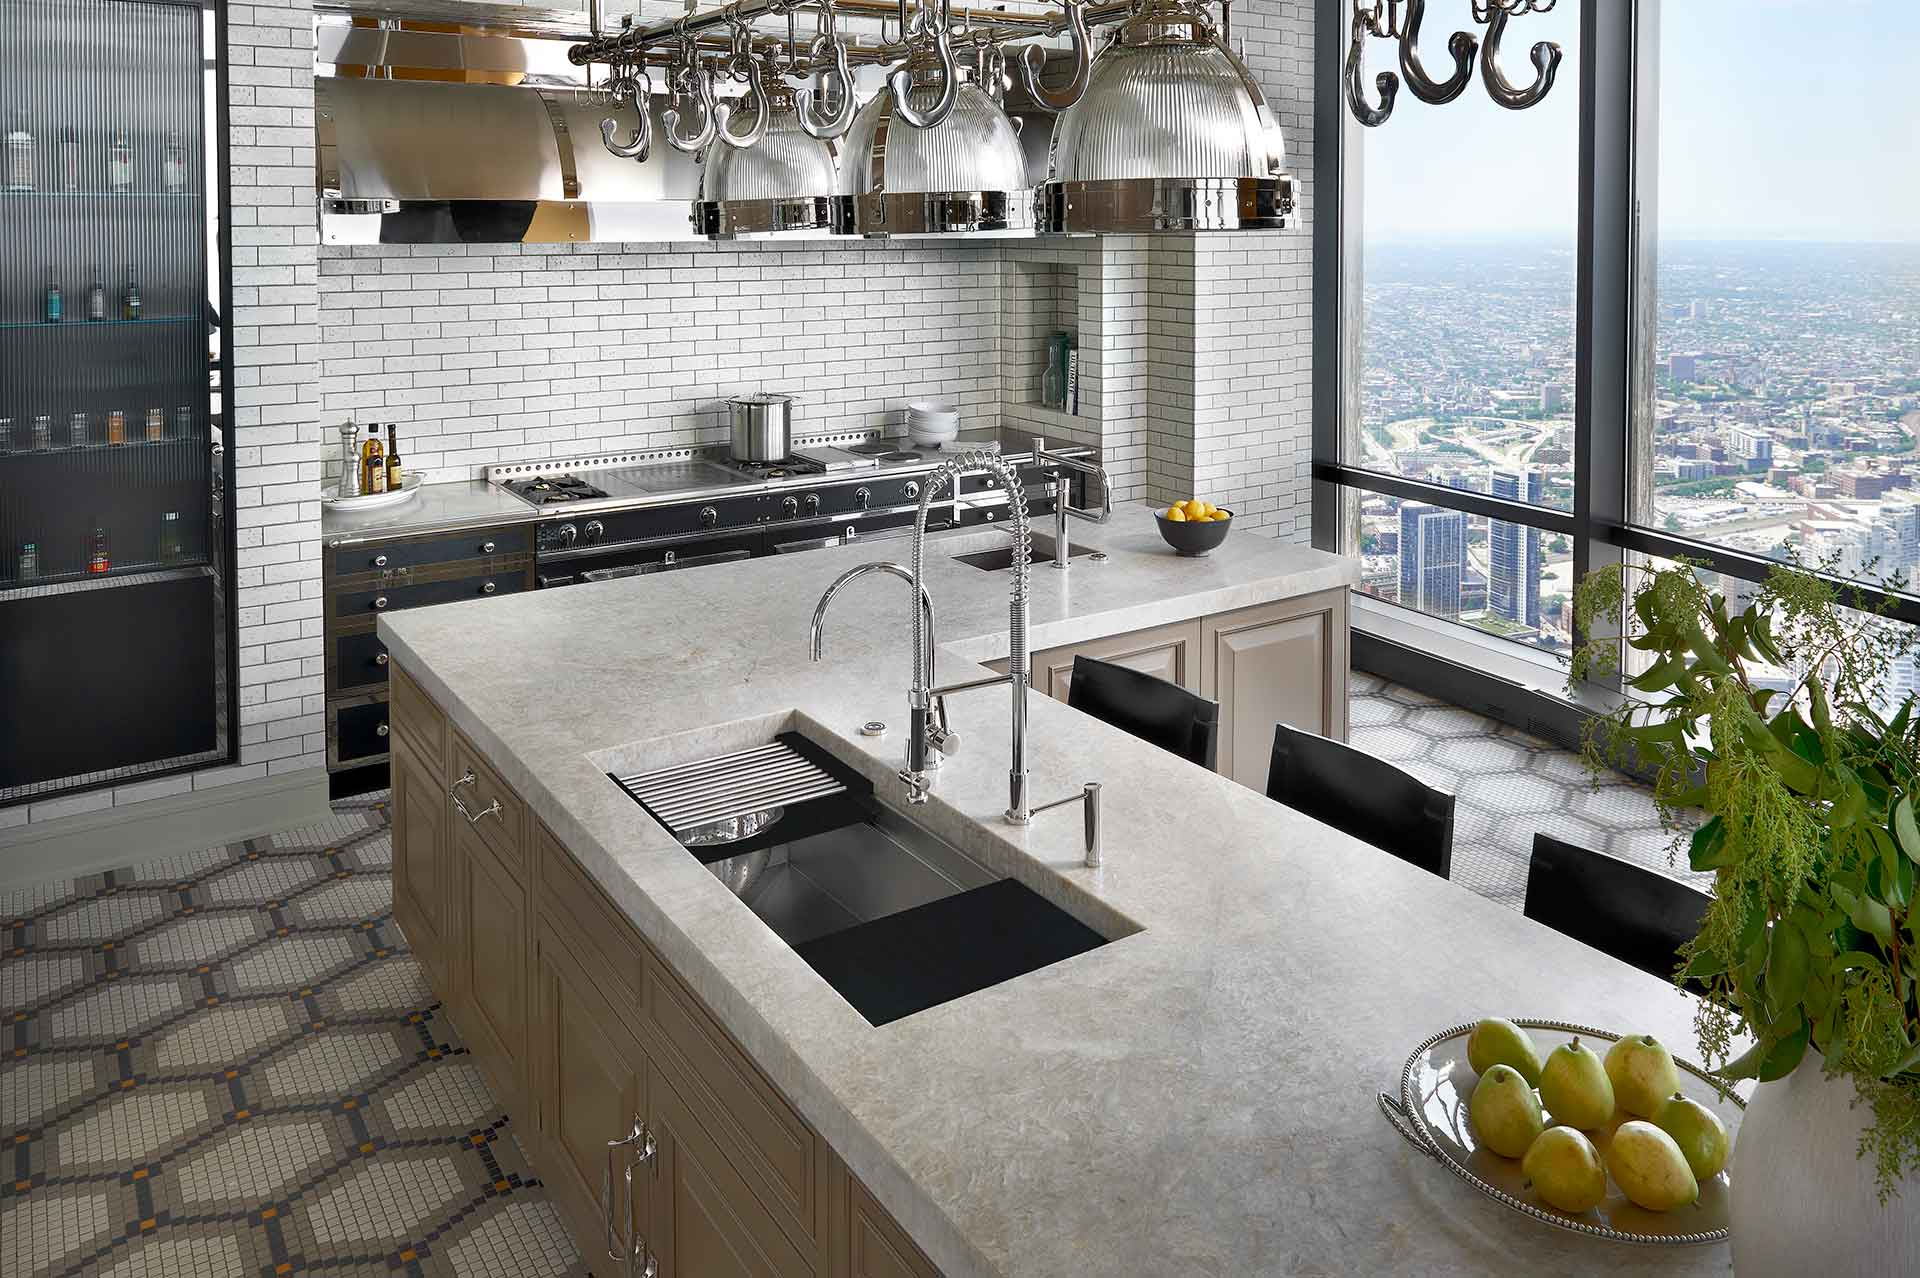 IWS-4-stainless-steel-kitchen-sink-graphite-wood-composite-culinary-kit-trump-tower-high-rise-chicago.jpg